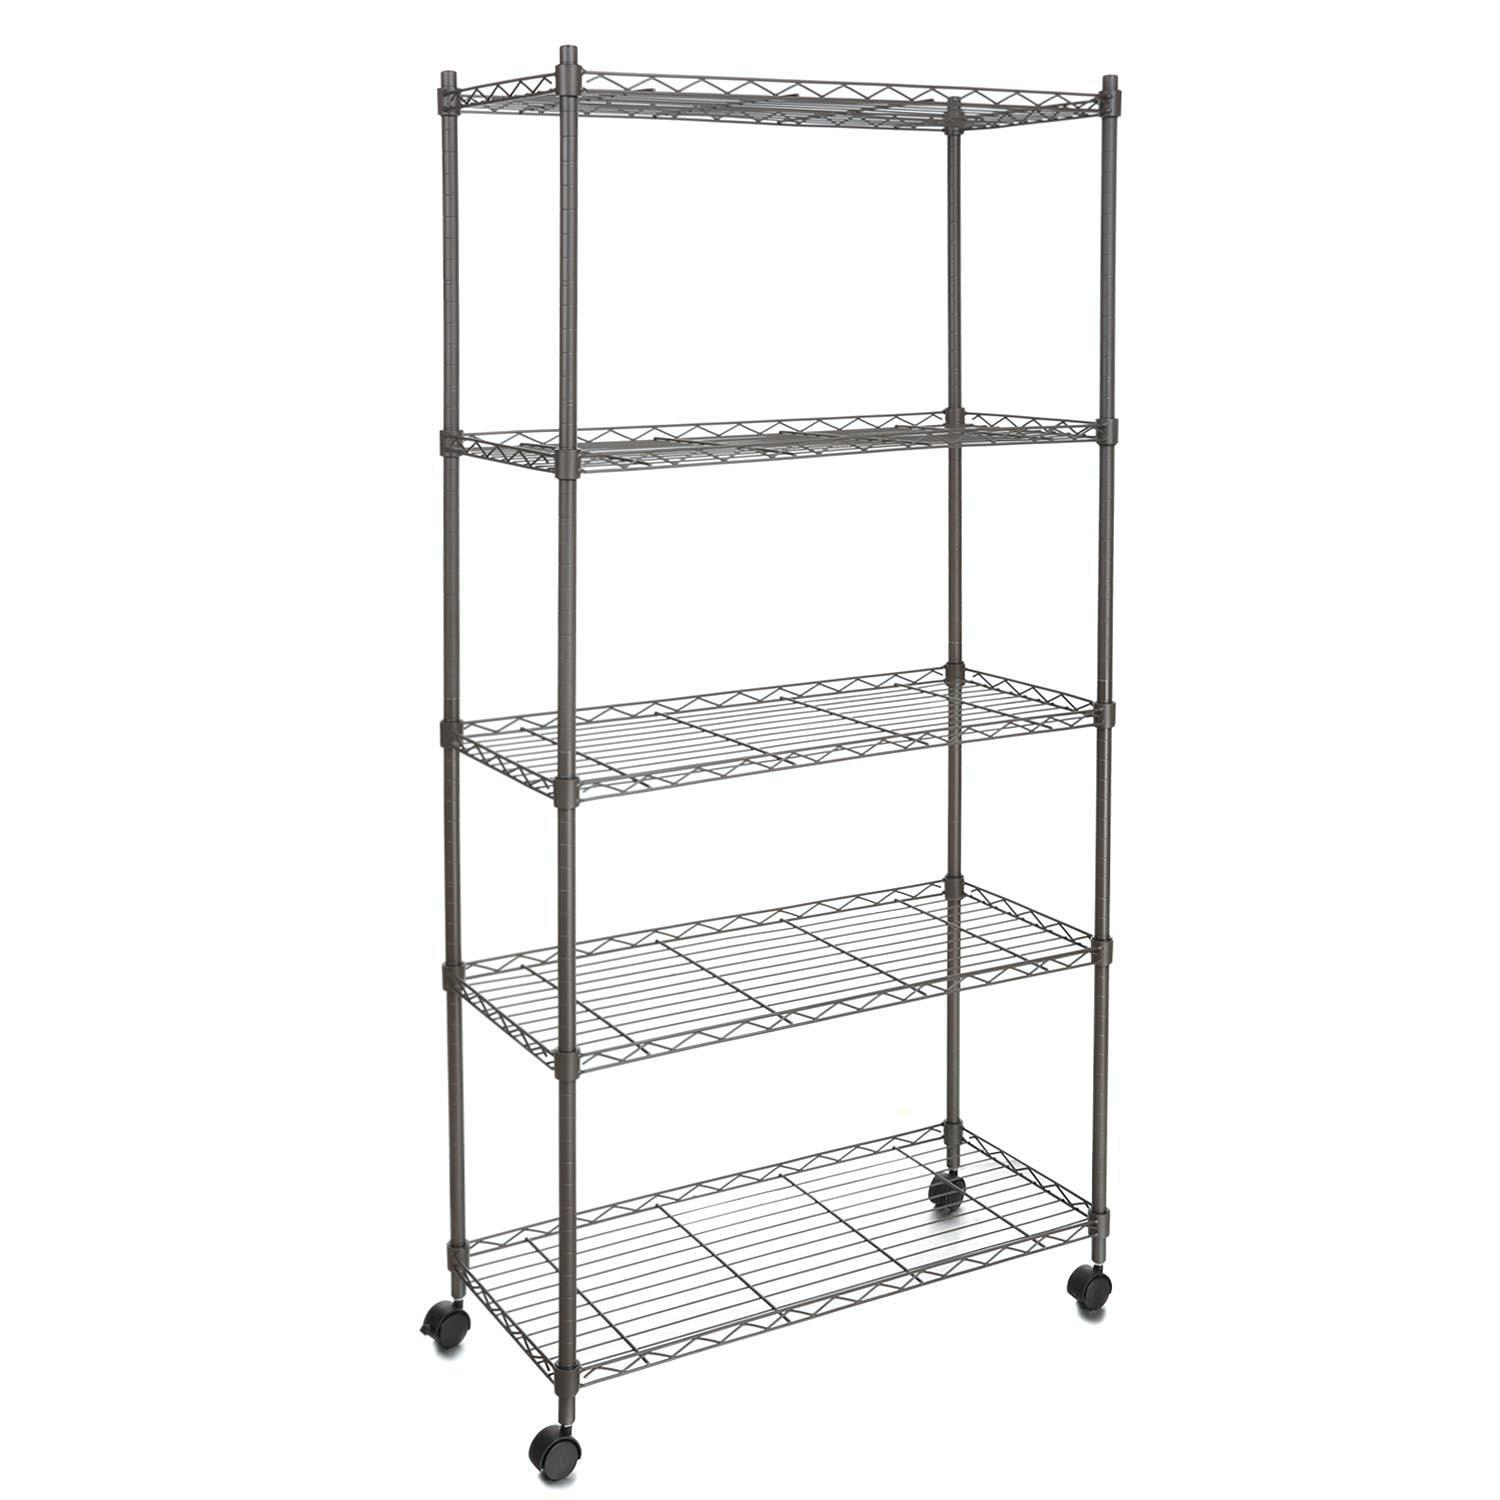 "29""W x 61""H x 14""D Muscle Rack Adjustable Wire Shelving 5-Tier Shelf Metal Shelf Unit with Wheels for Kitchen Bedroom Garage  CEAER"